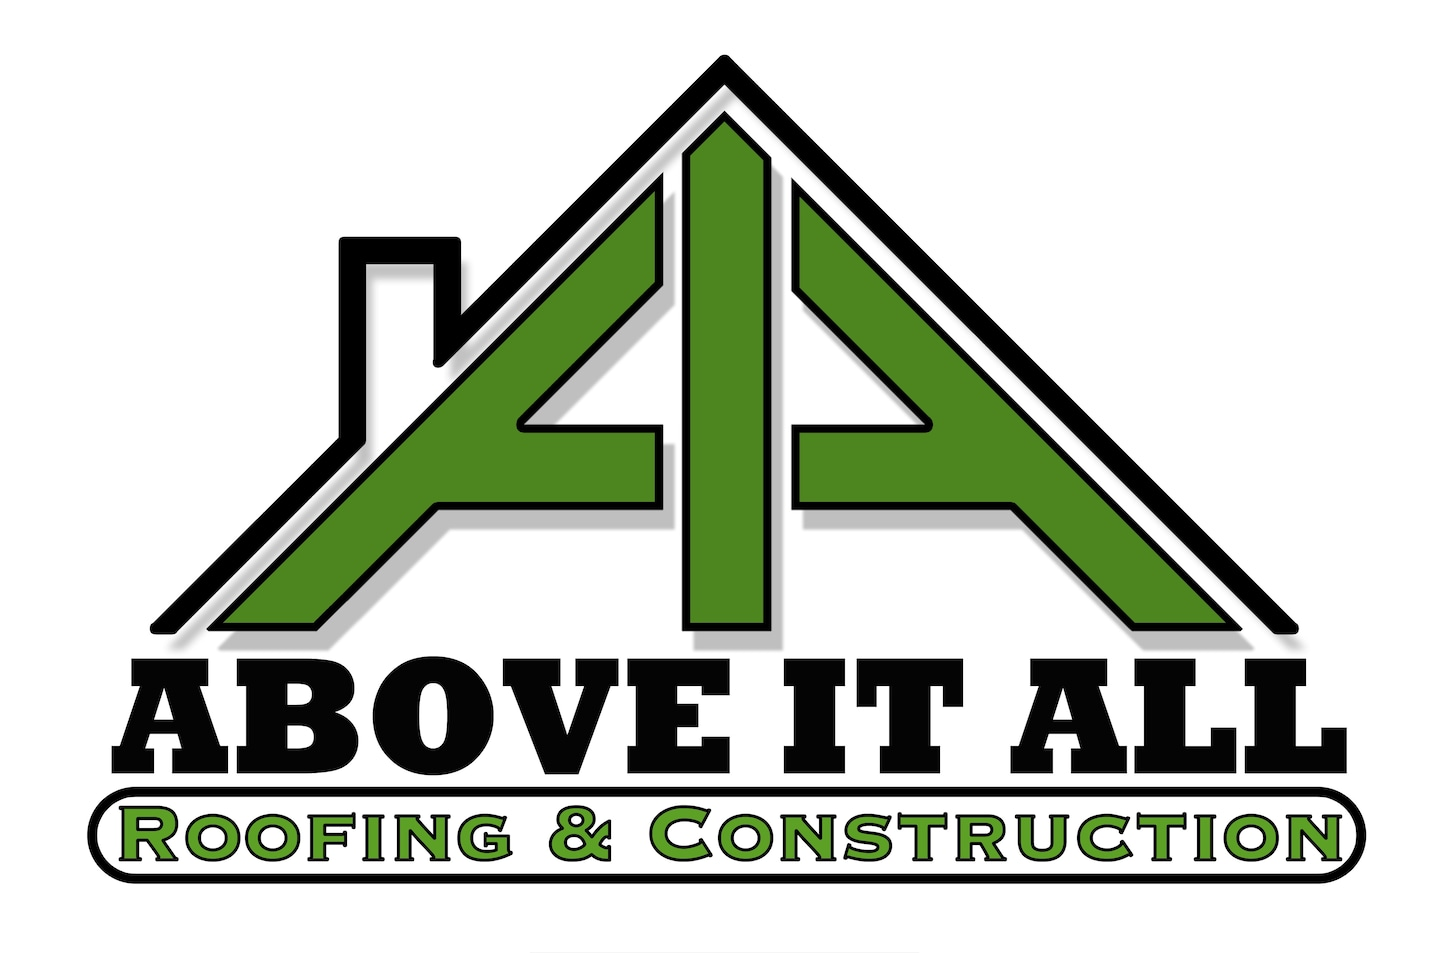 Above It All Roofing & Construction Inc